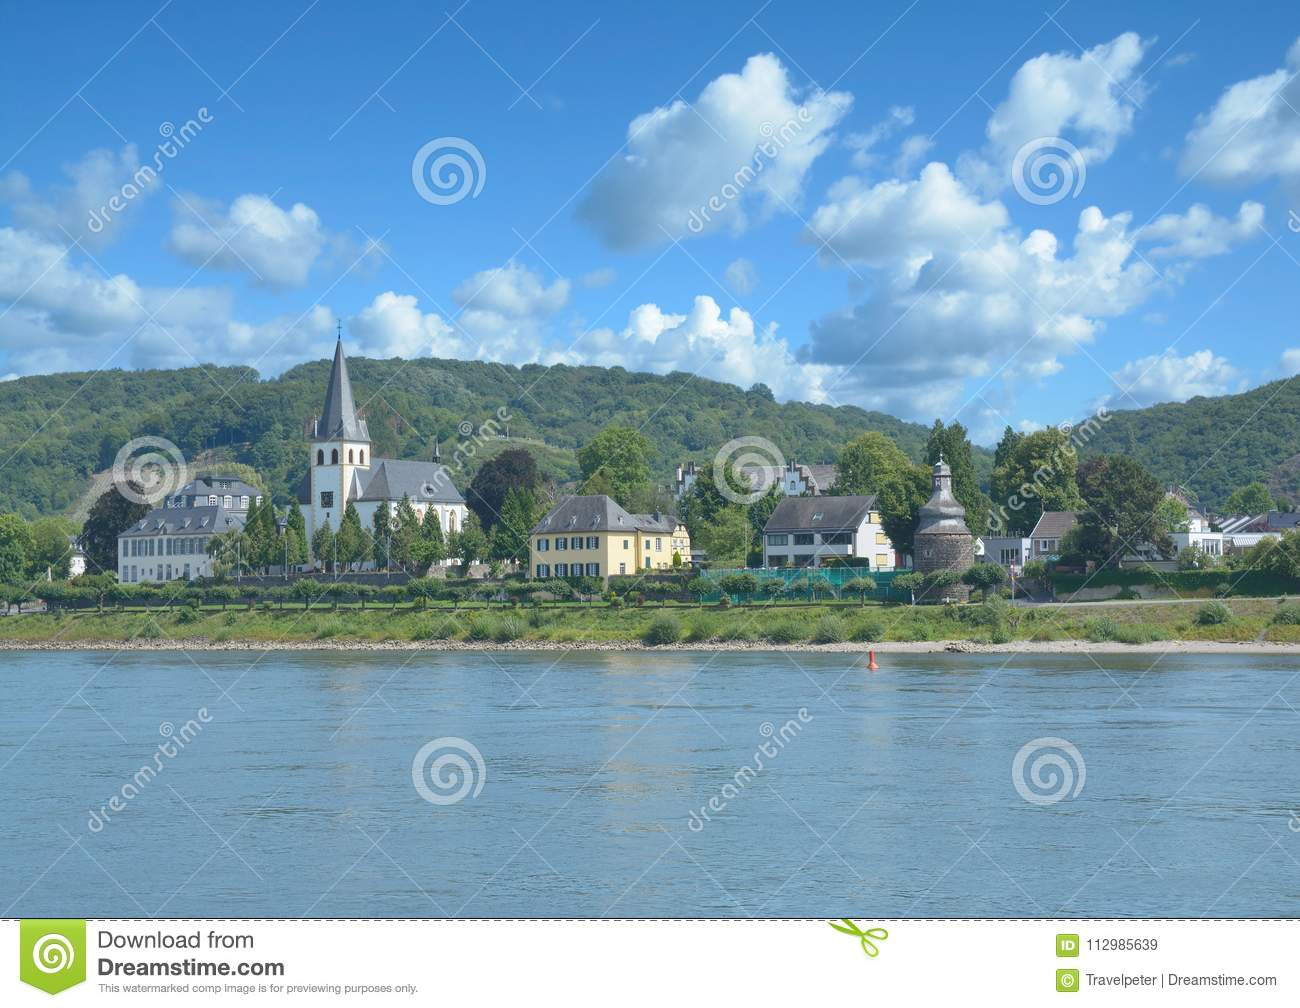 Village of Unkel,Rhine River,Rhineland-Palatinate,Germany